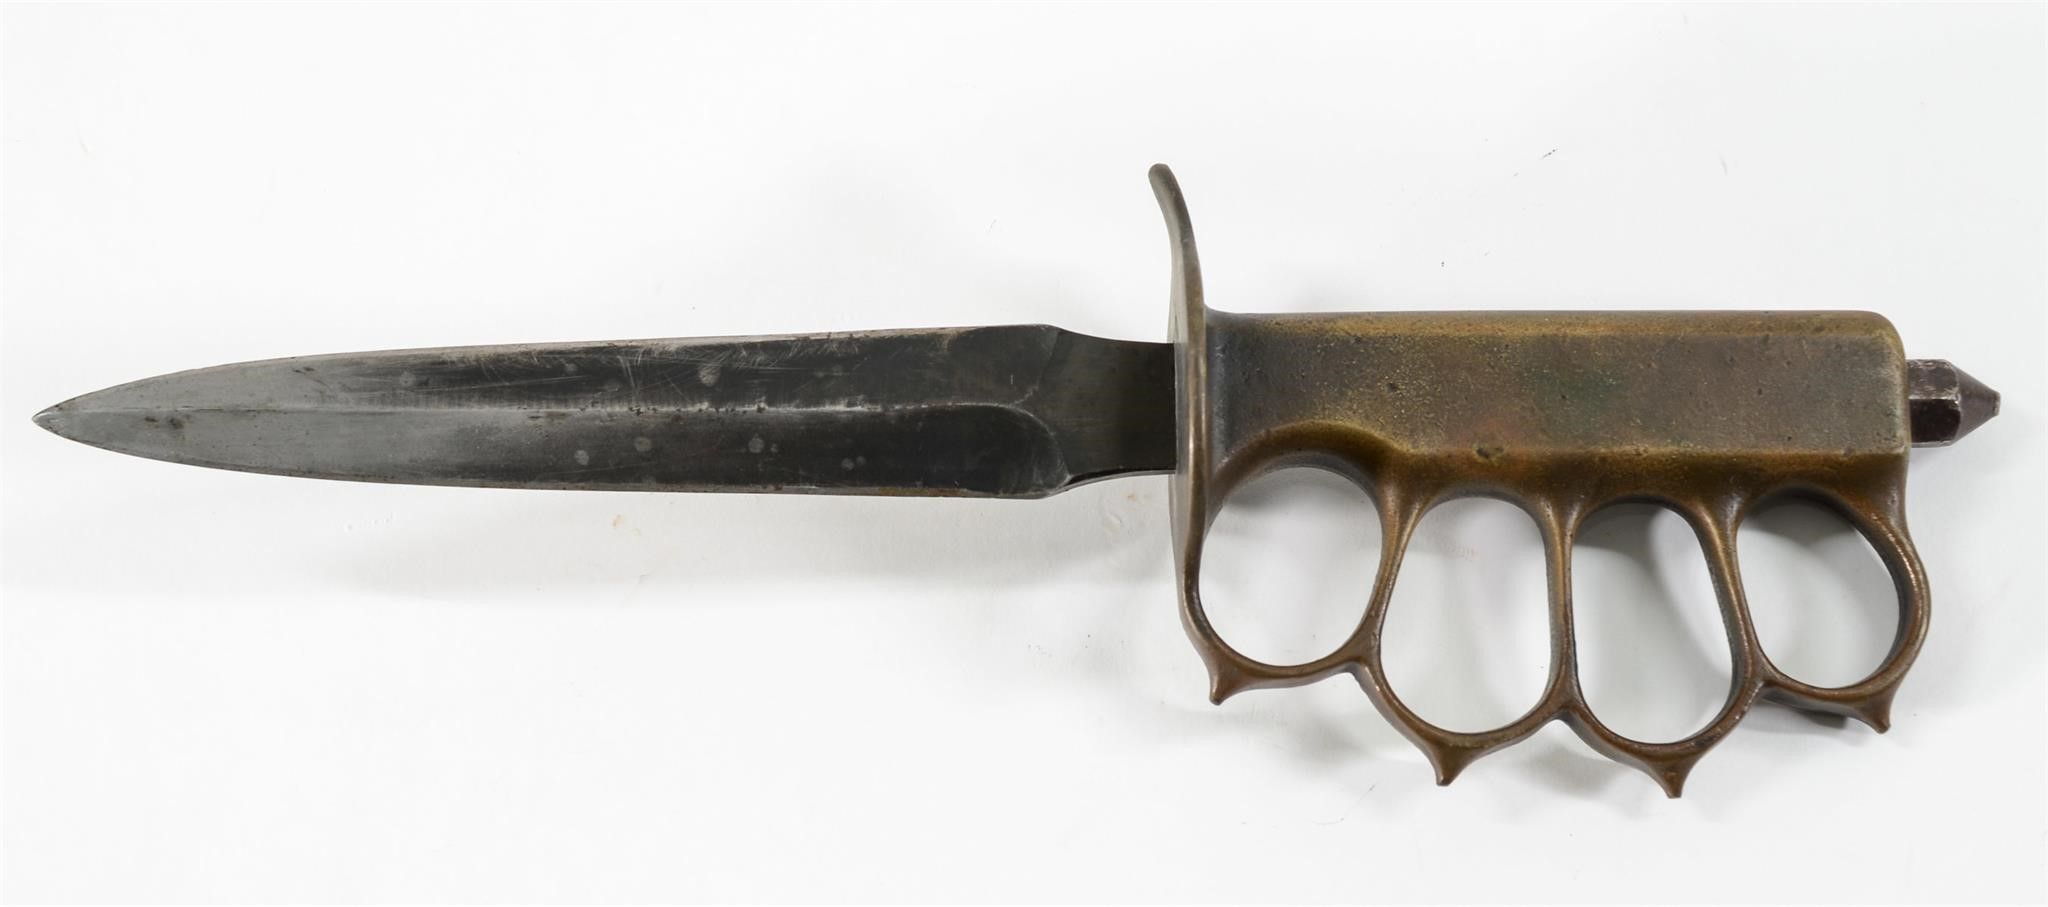 US 1918 Knuckle Duster Trench Knife